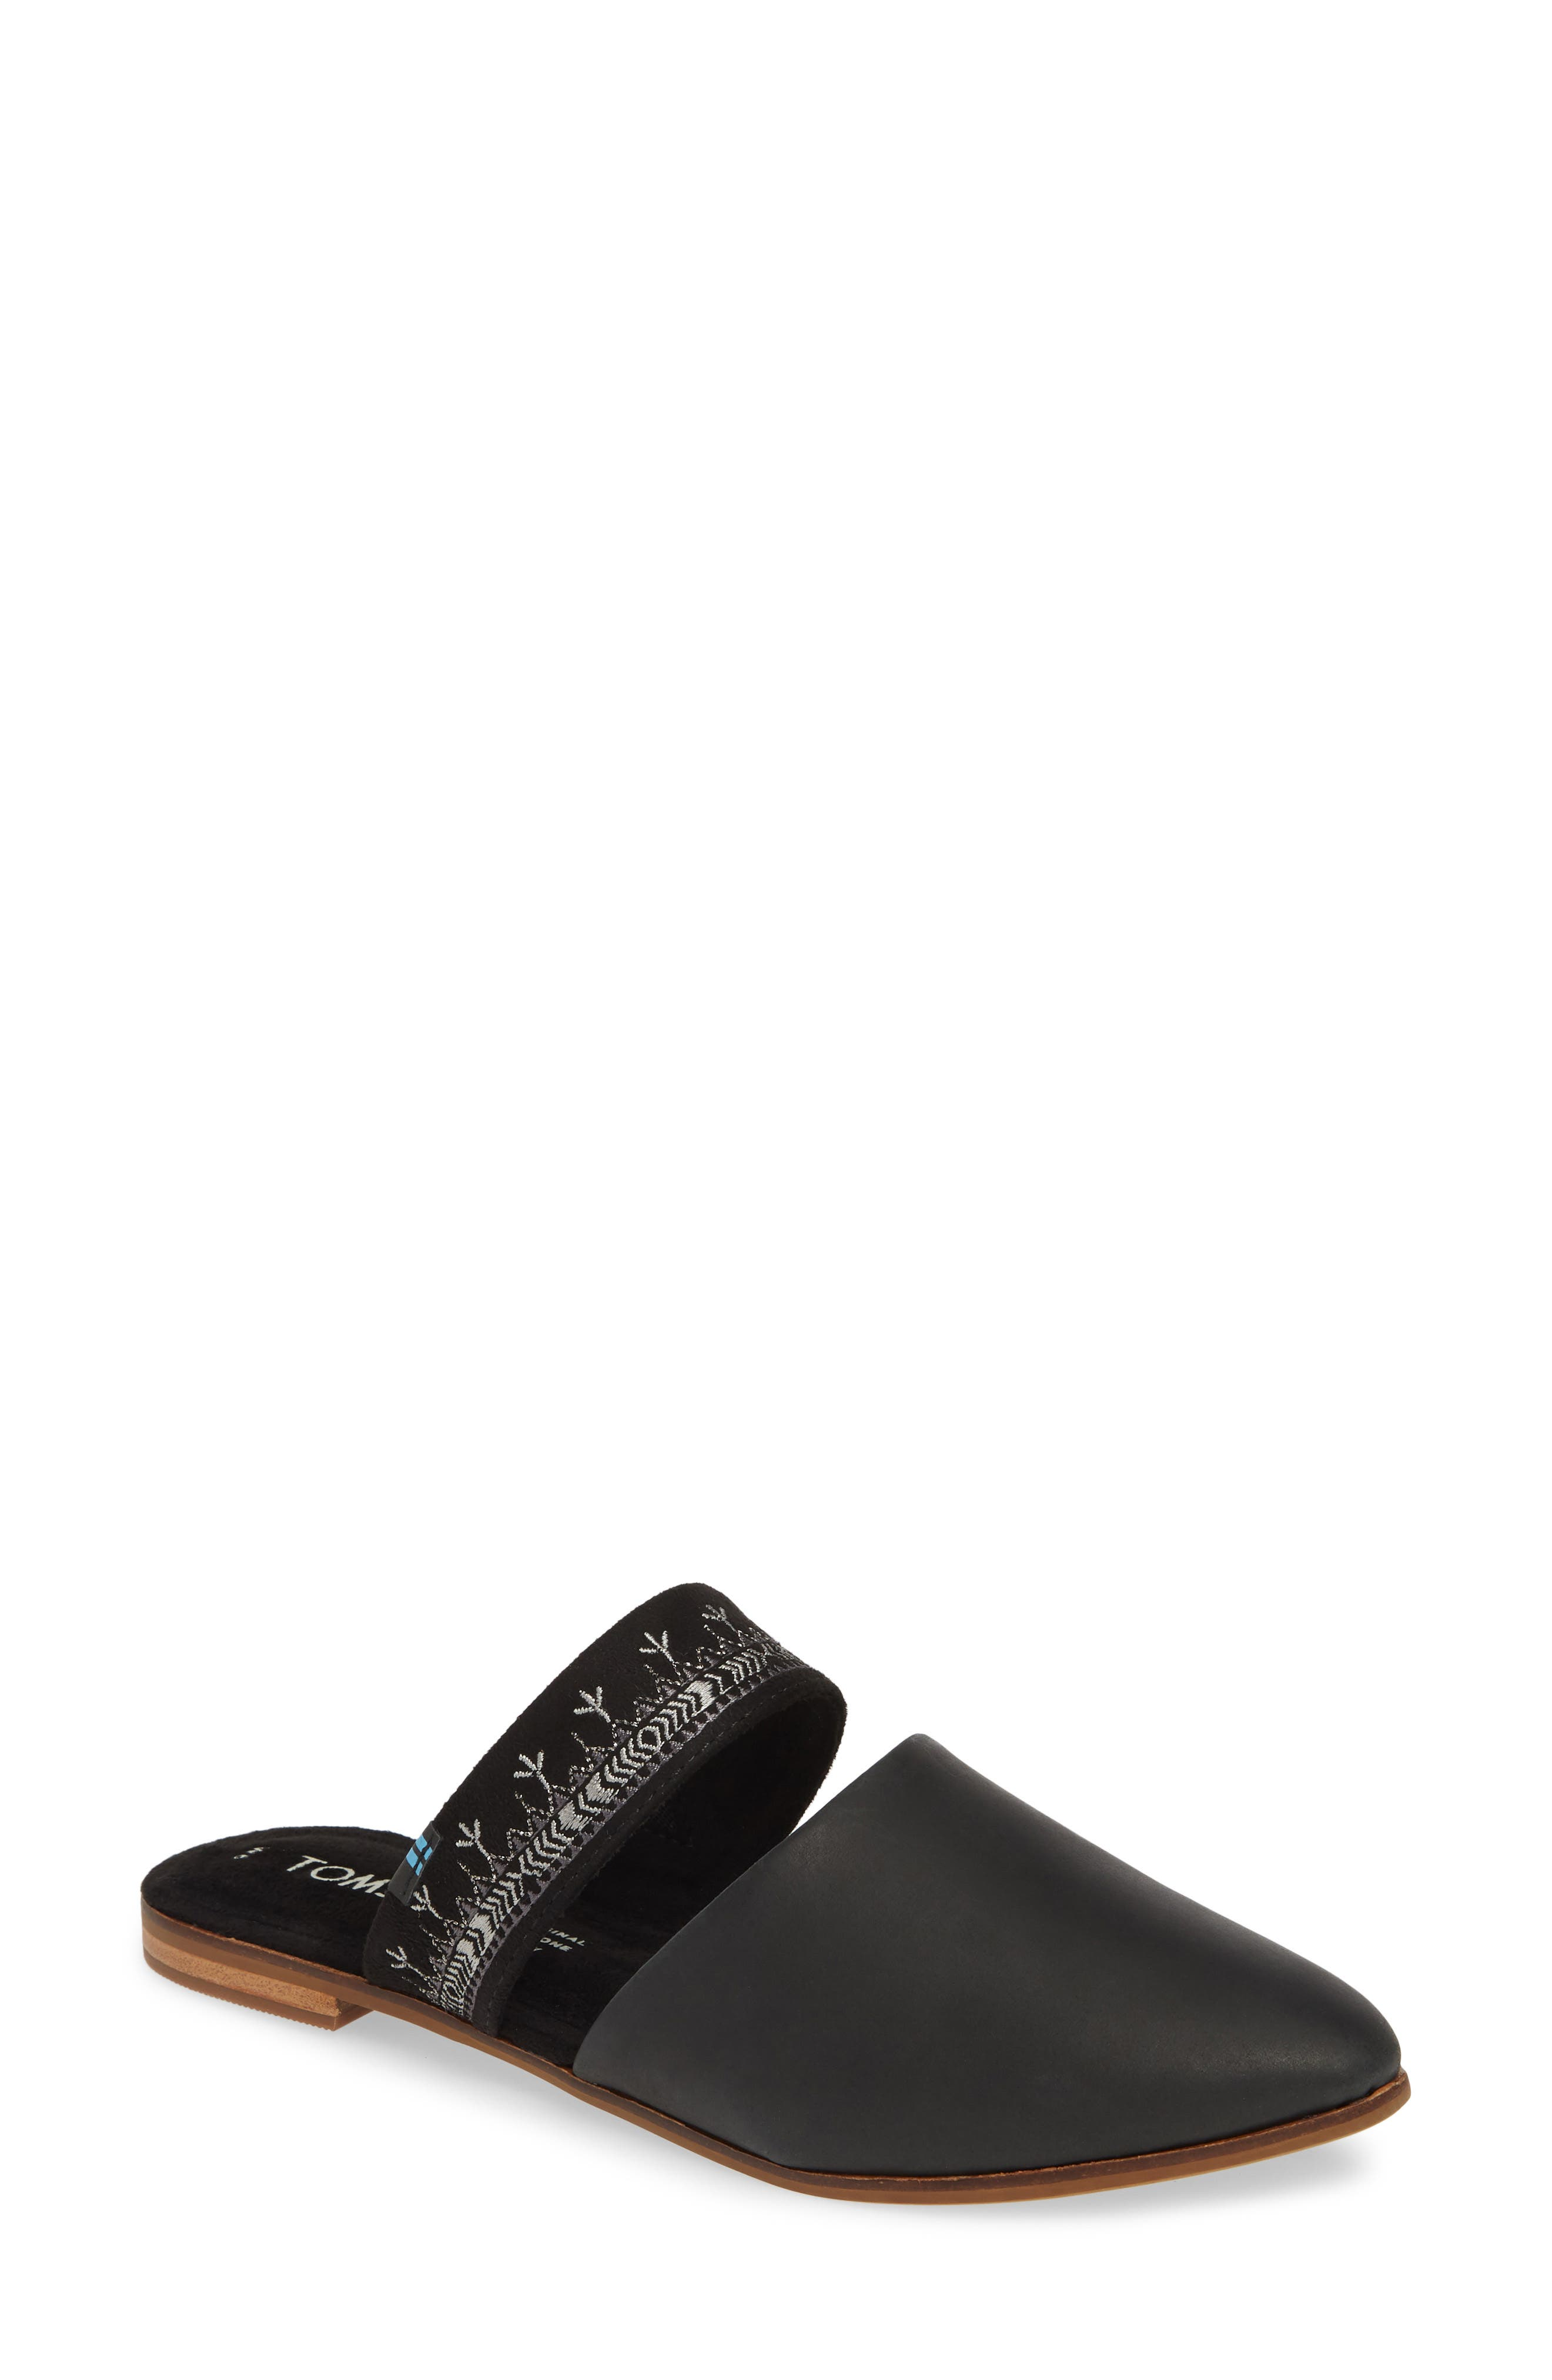 Jutti Embroidered Mule, Main, color, BLACK EMBROIDERED LEATHER